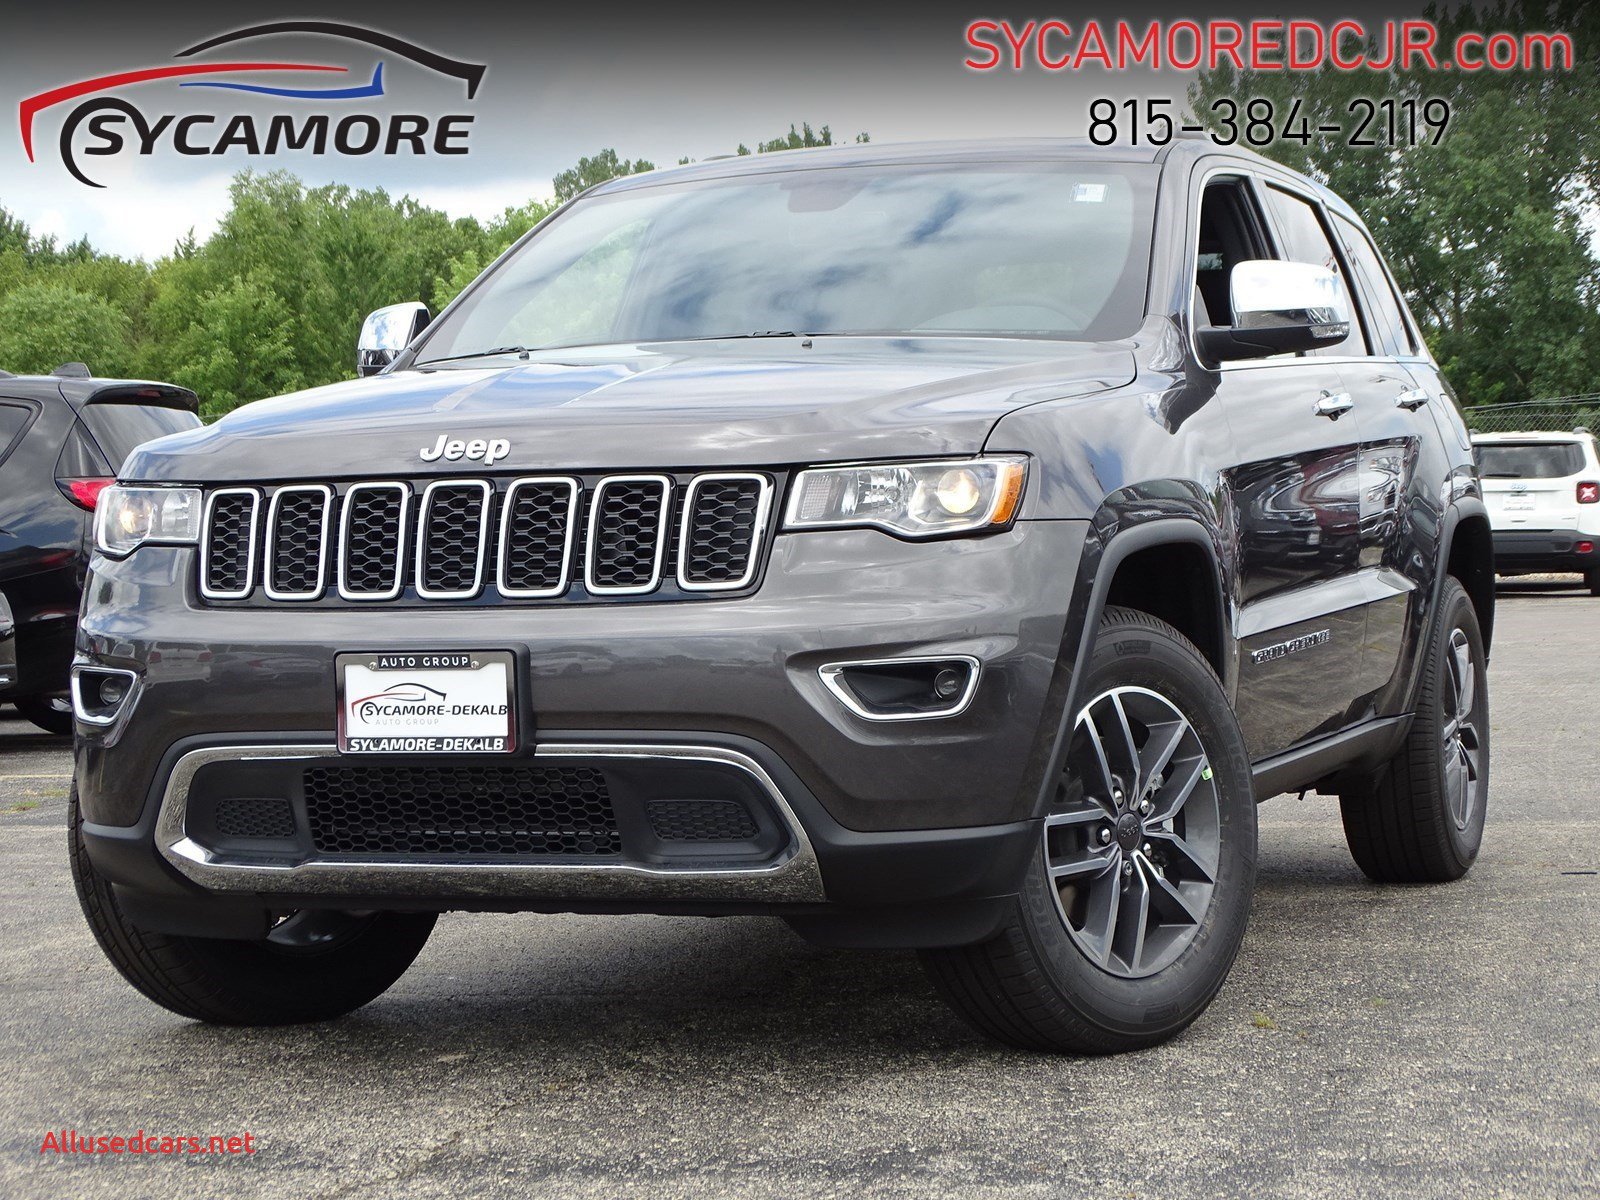 2010 Jeep Grand Cherokee Inspirational New 2019 Jeep Grand Cherokee Limited 4×4